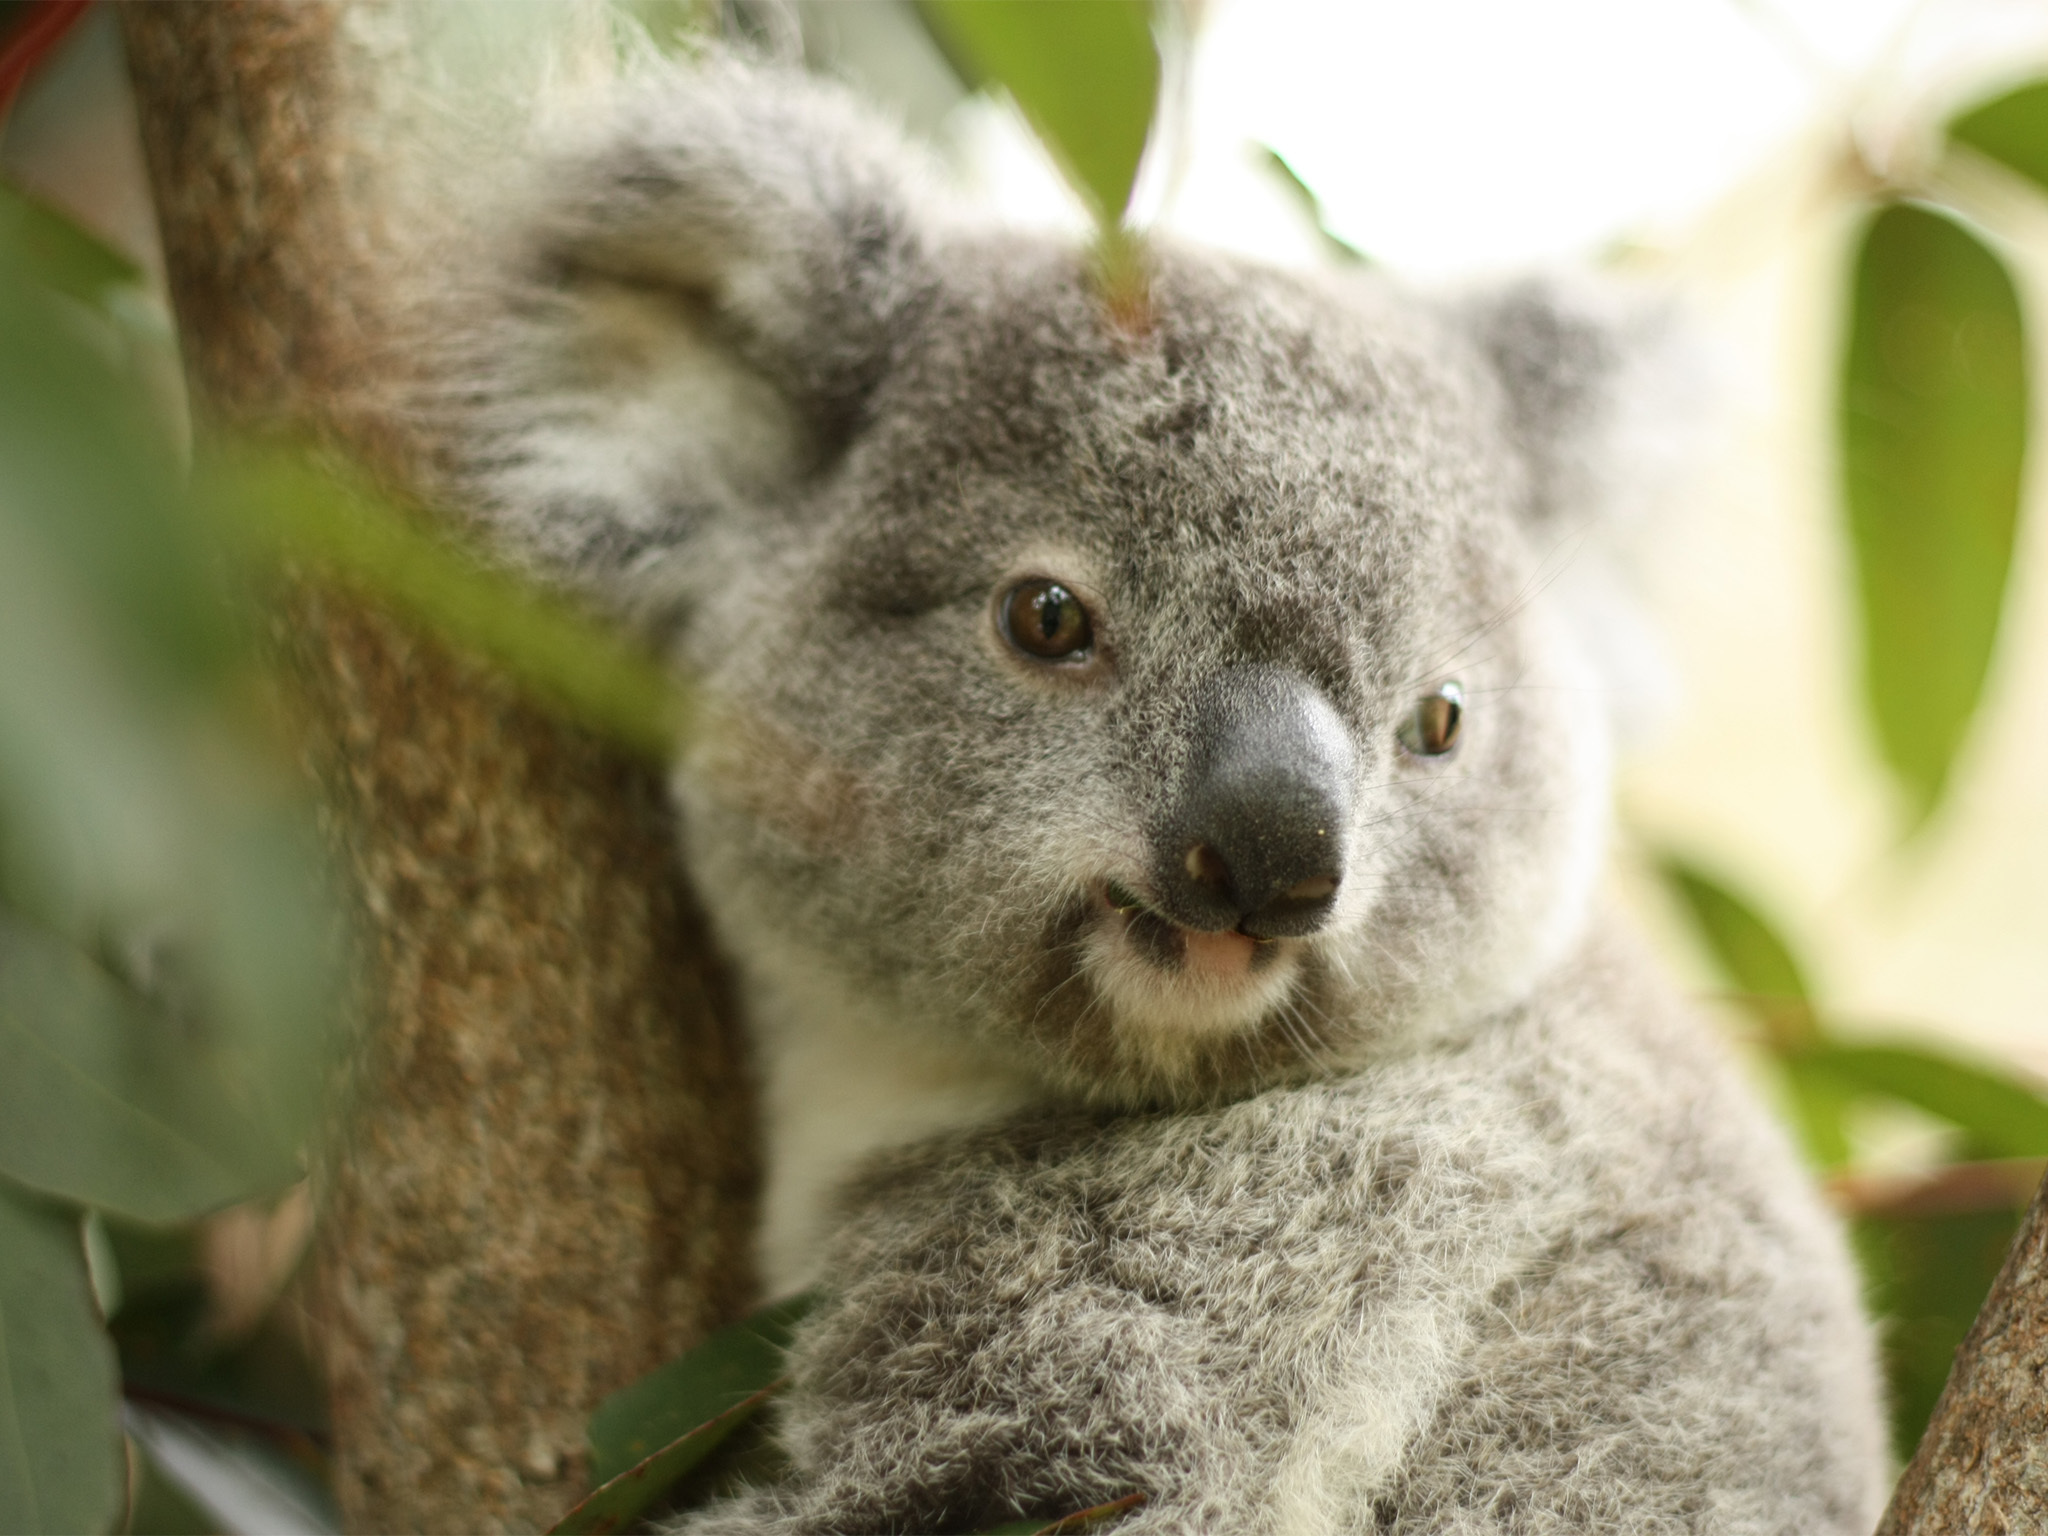 A close up shot of a baby koala in a tree